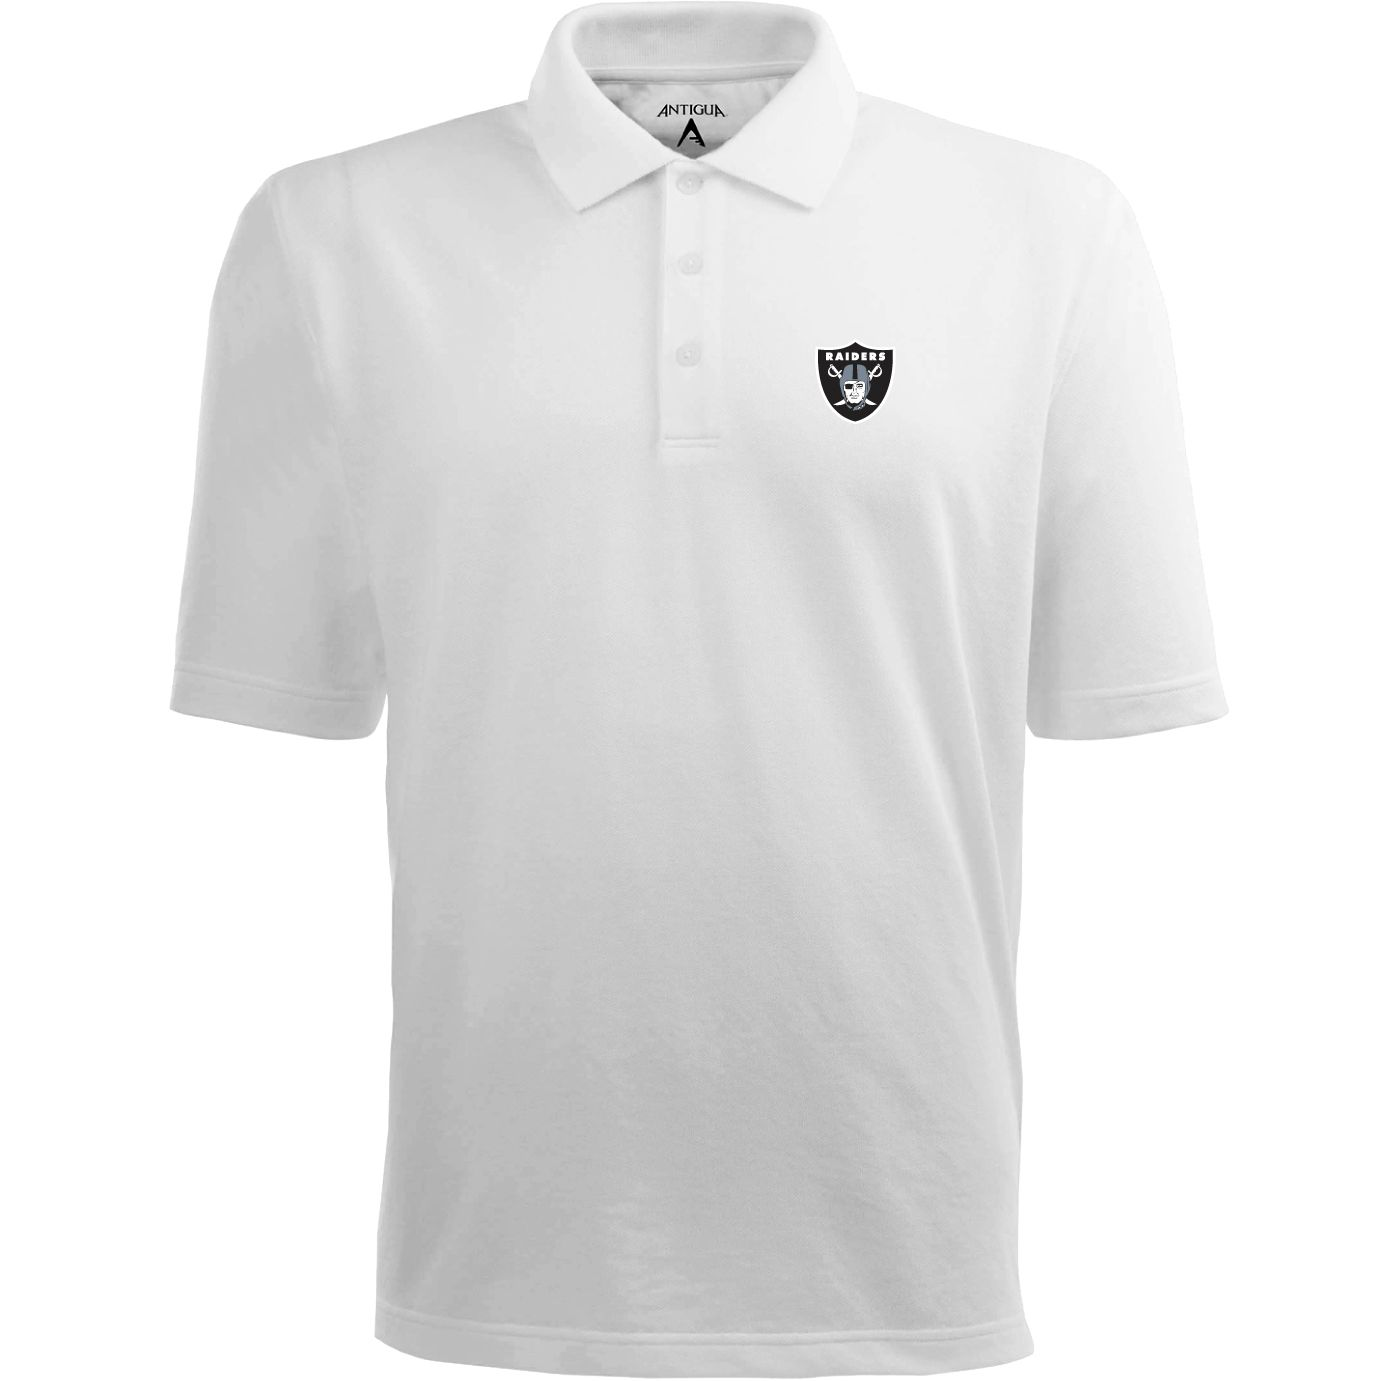 Antigua Men's Oakland Raiders Pique Xtra-Lite White Polo